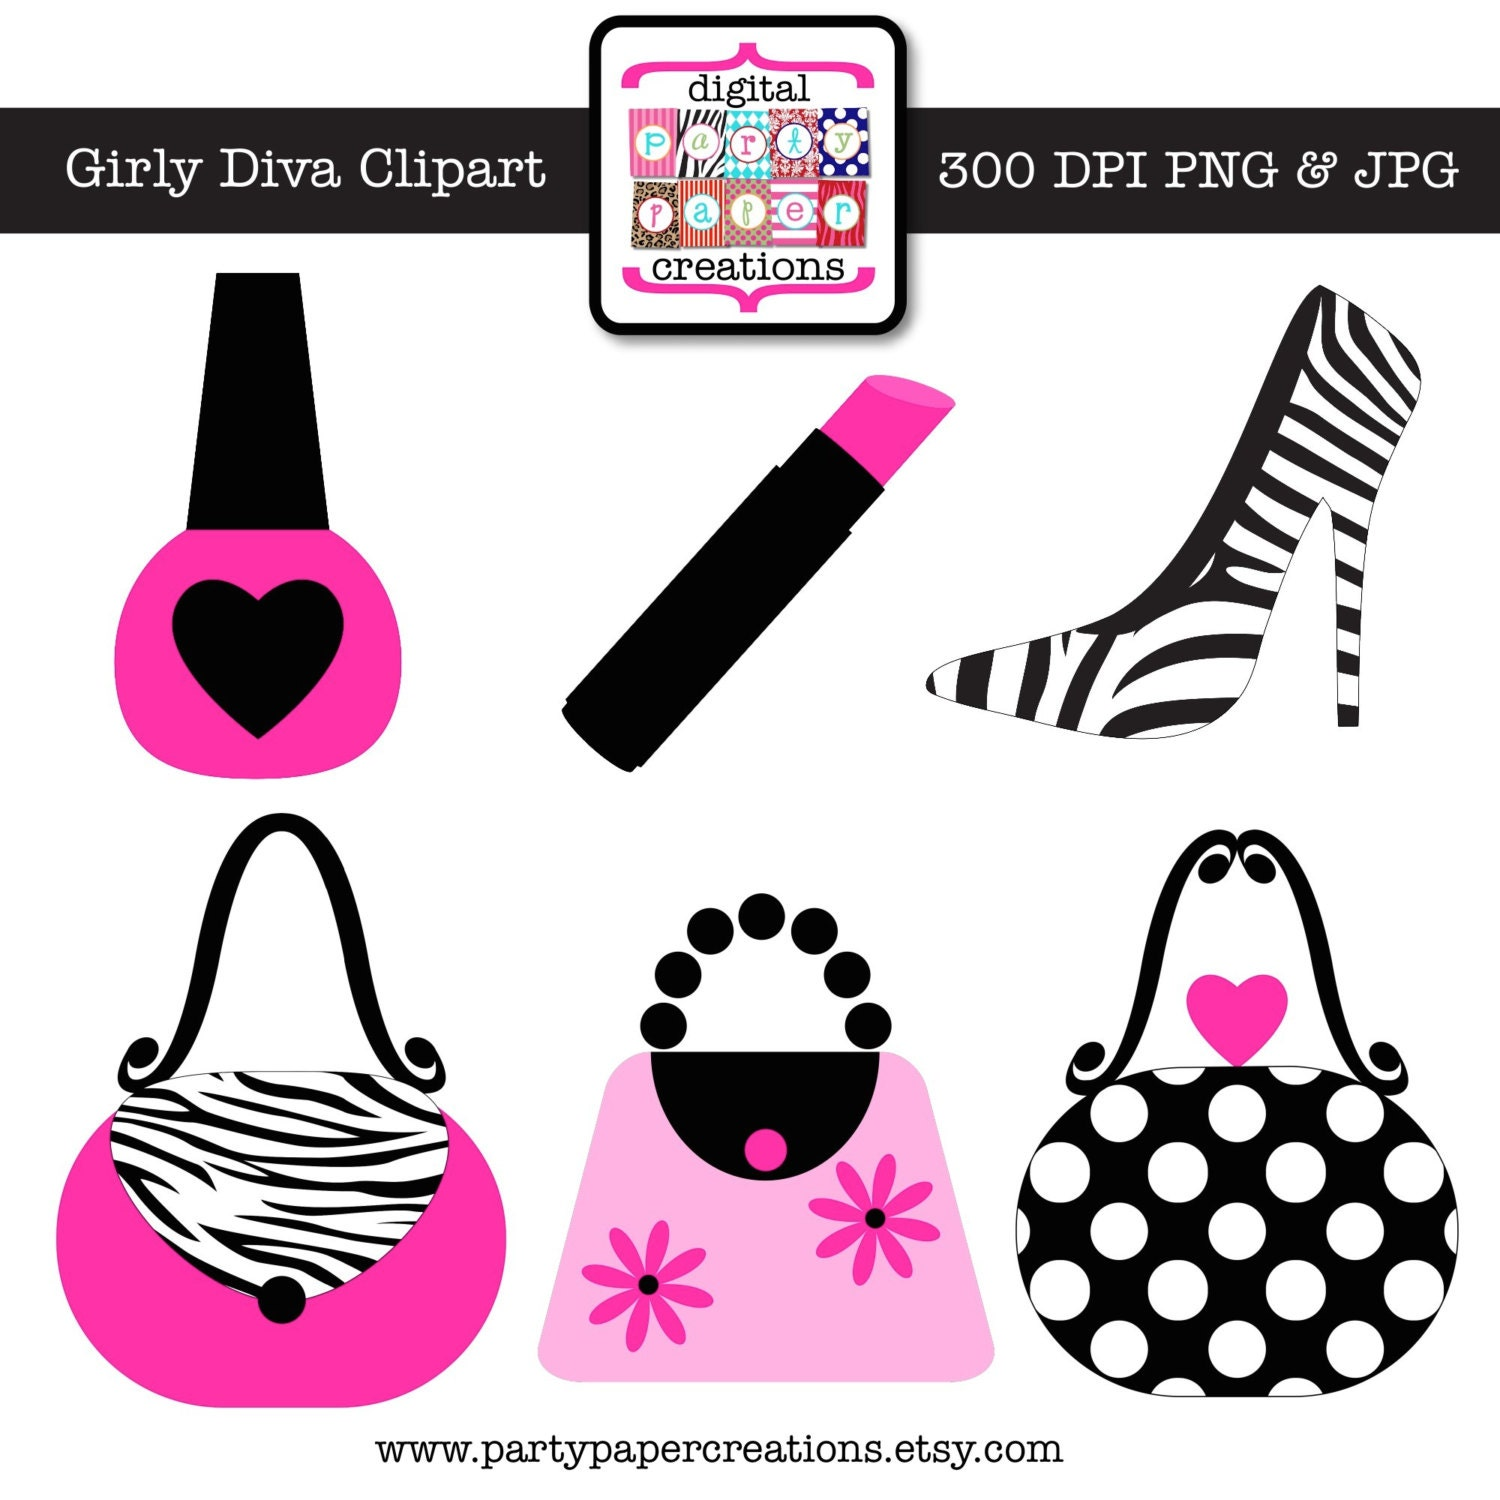 A Nail Art Beauty Salon Fashion Makeover Game For Girls: Girly Diva Clipart Graphic Design Hot Pink Zebra Print